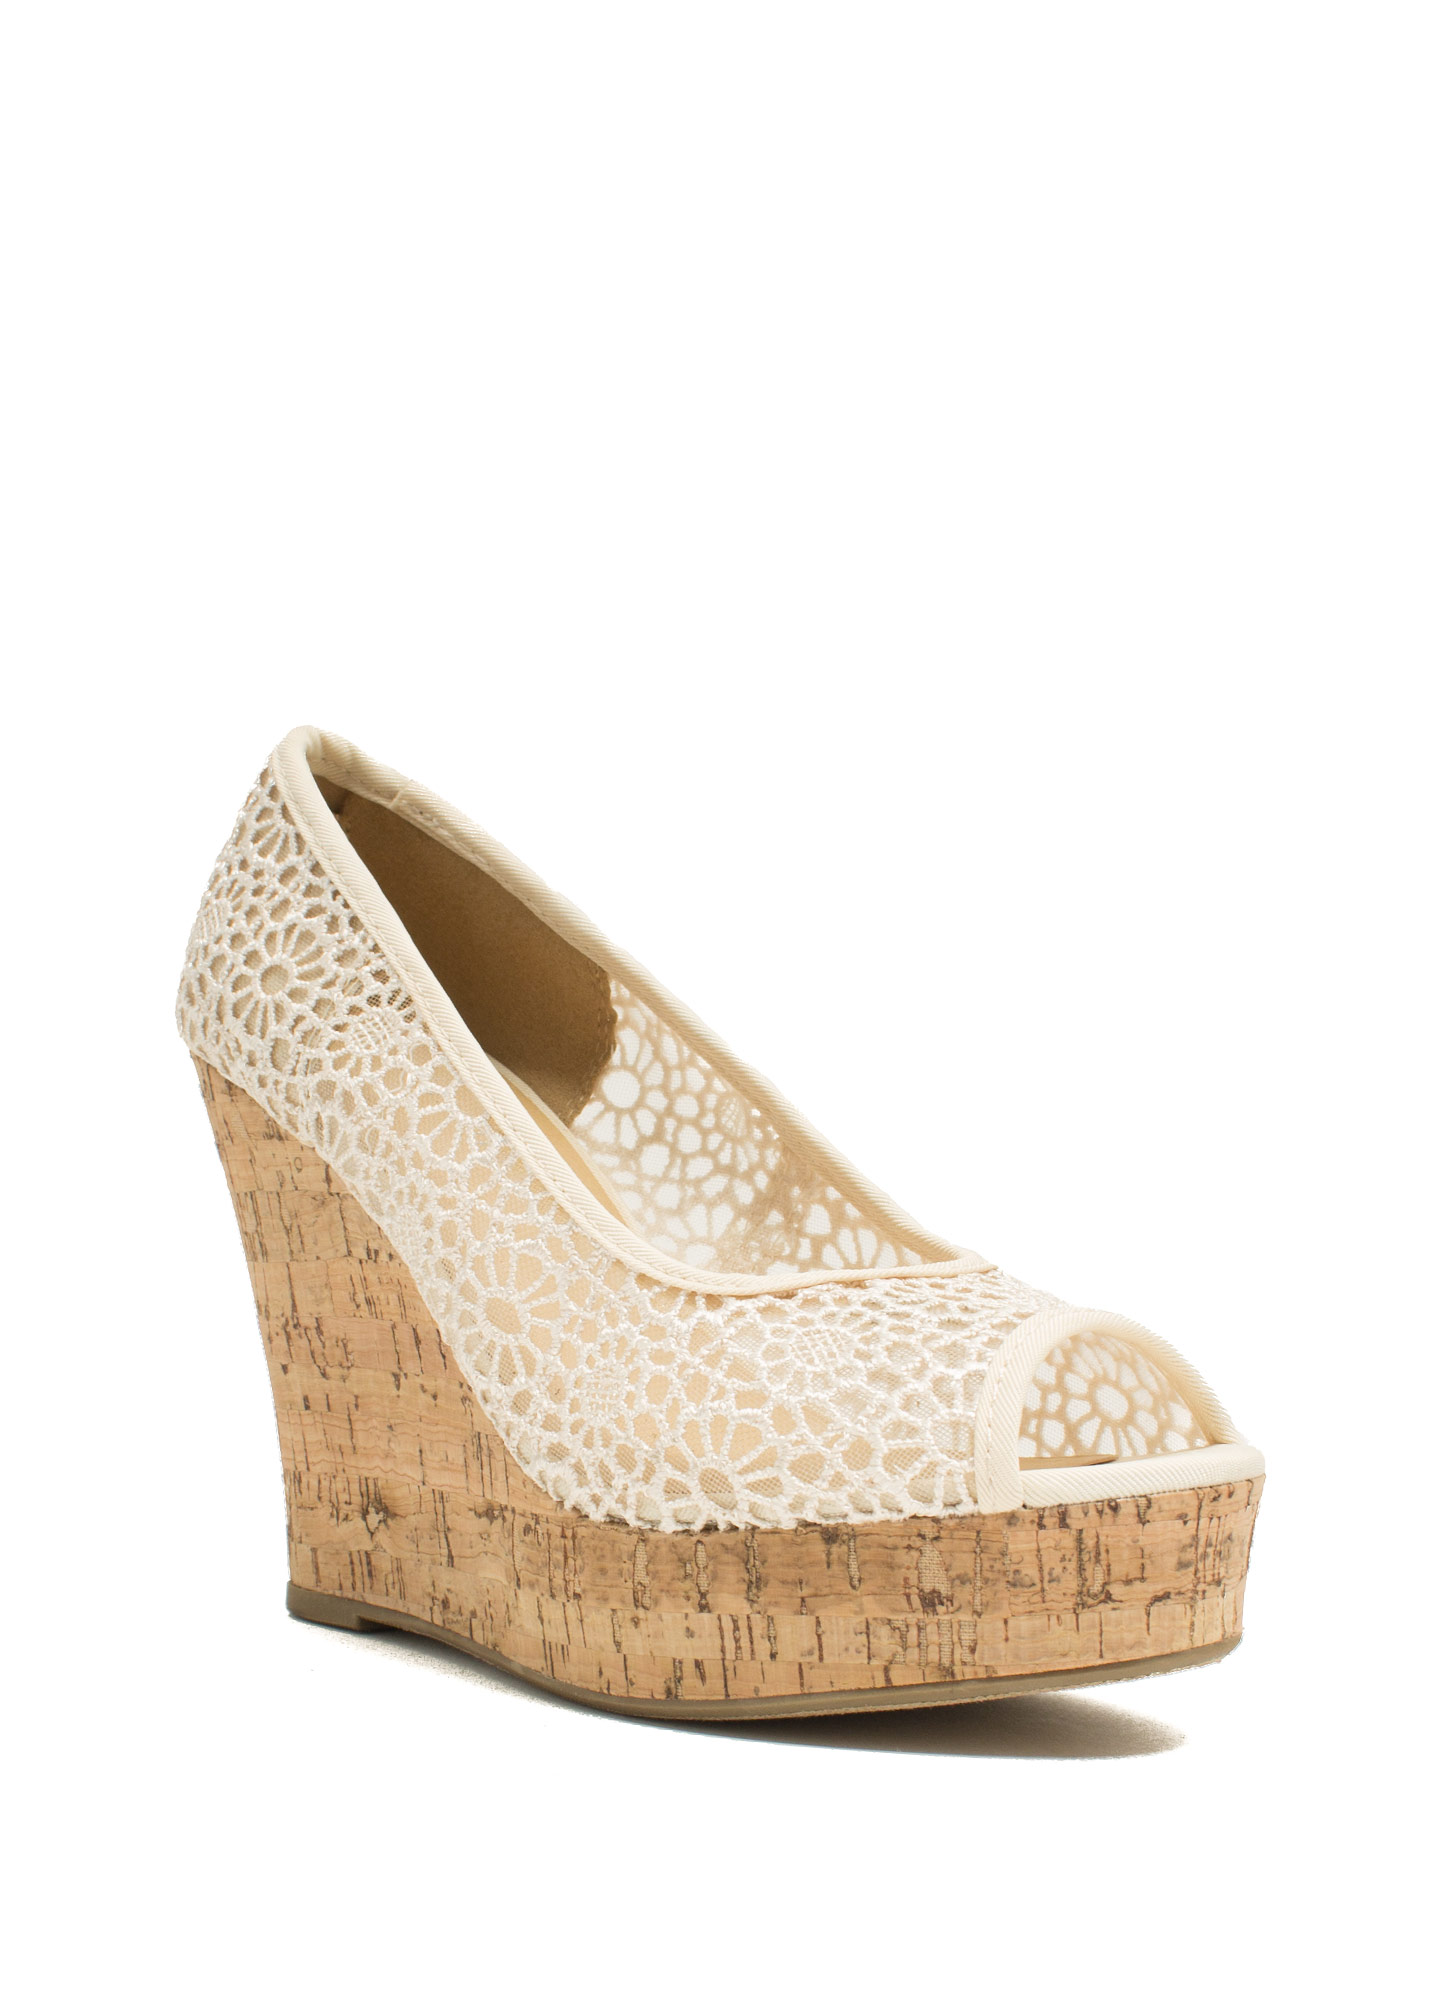 Floral Fiend Embroidered Wedges LTTAUPE (Final Sale)